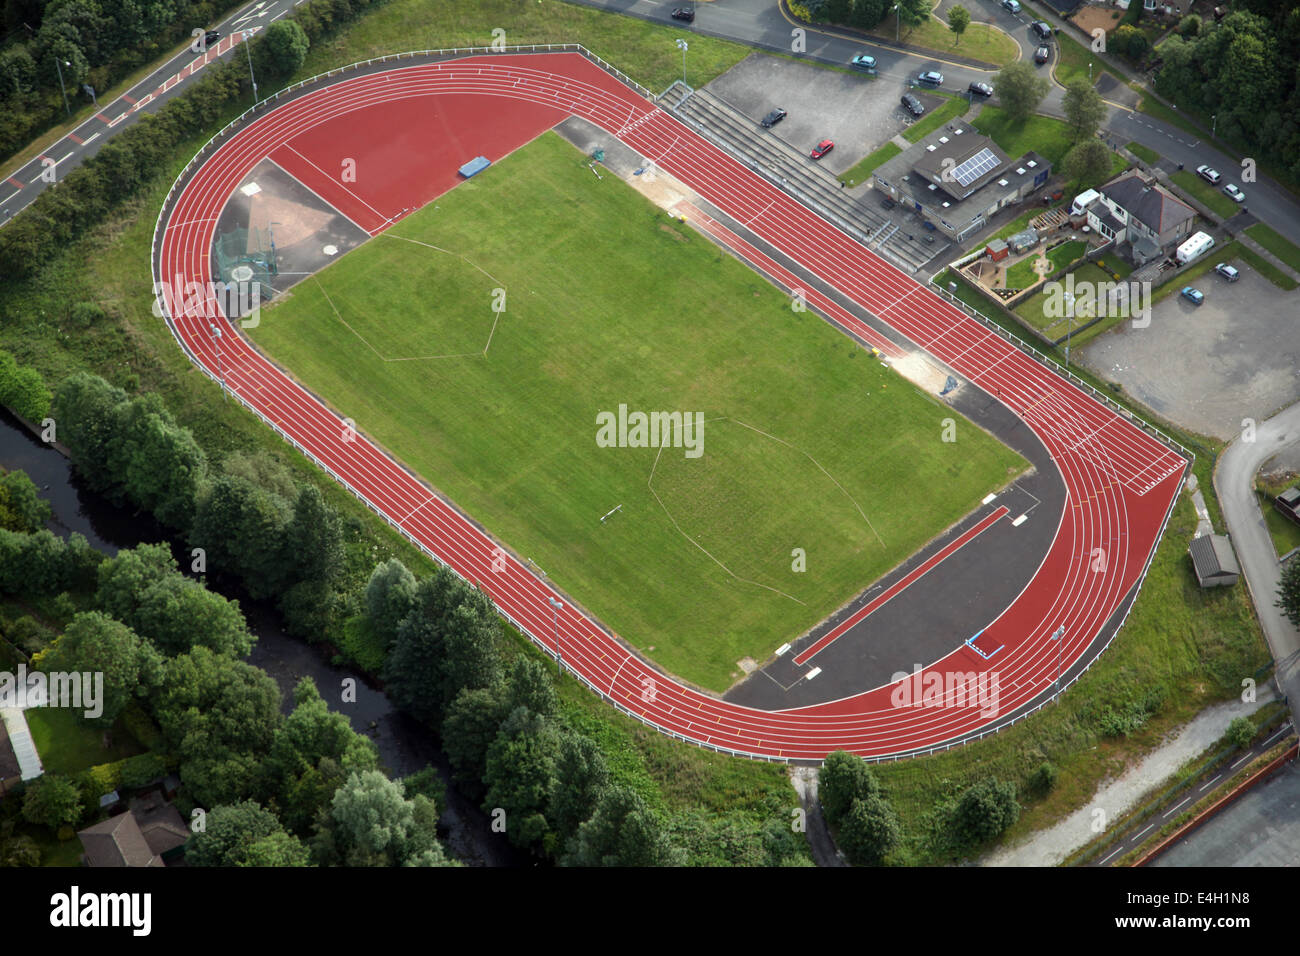 Aerial view of a red athletics running track and field. This one at Nelson, Lancashire. Stock Photo